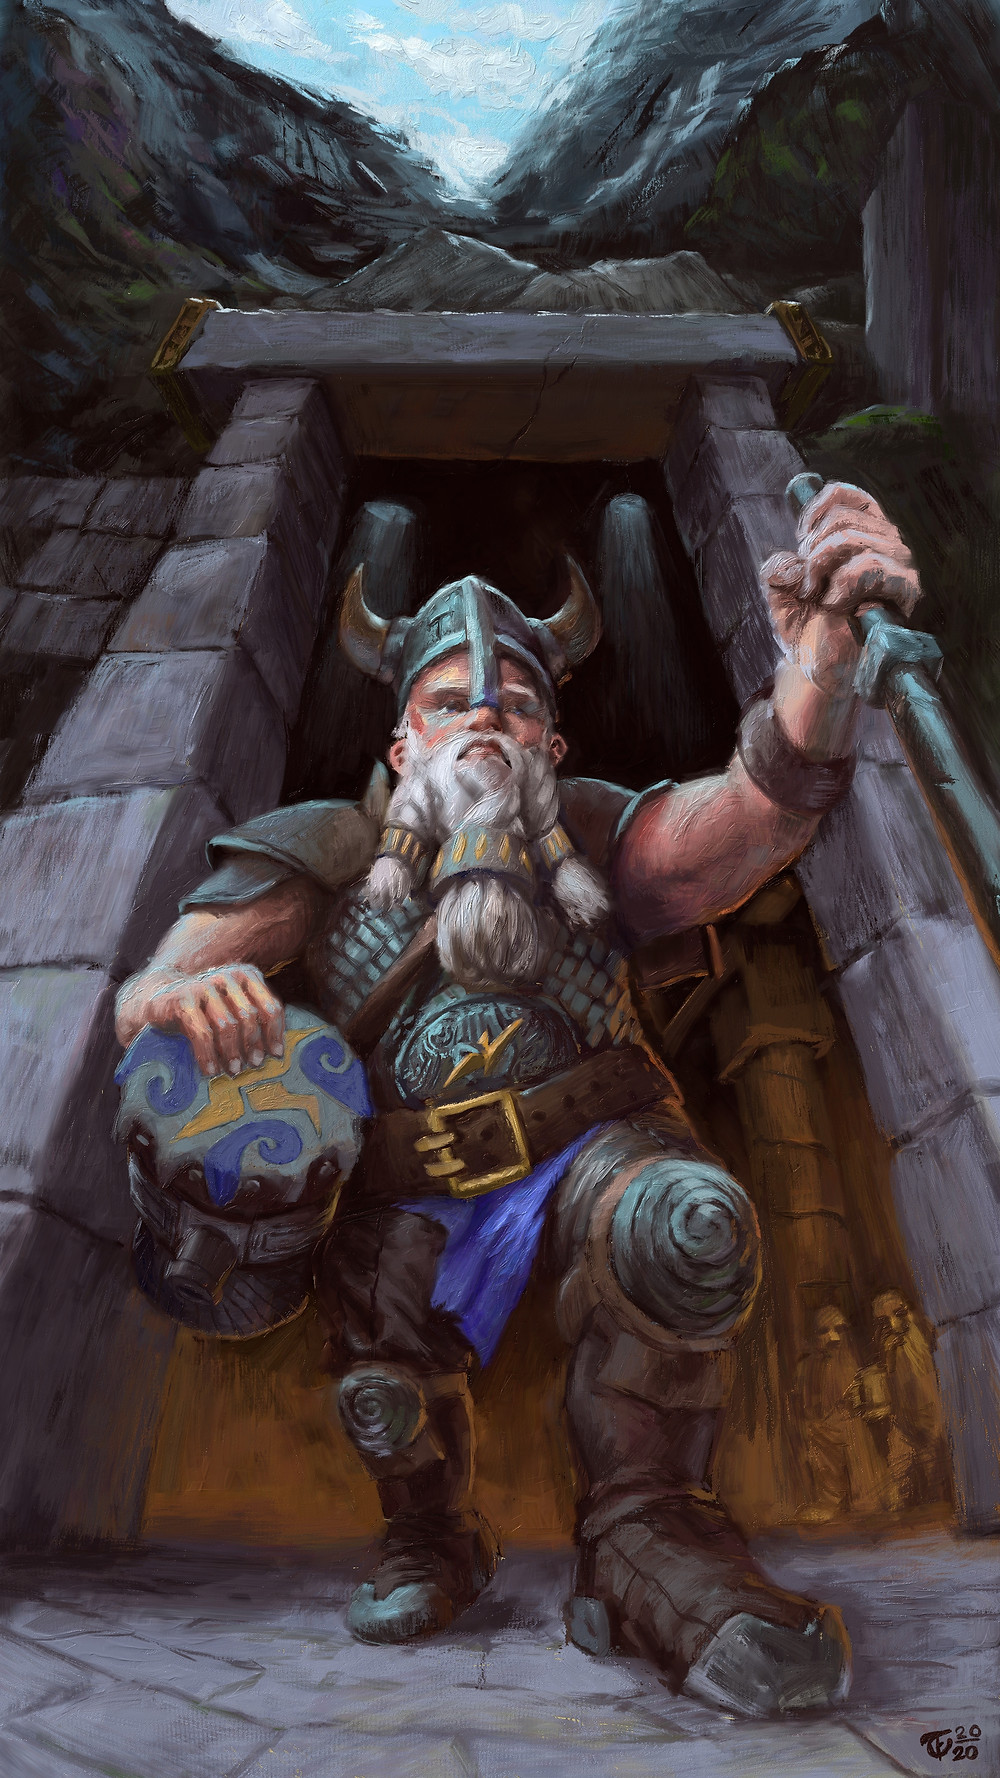 Dwarves are cool. They're all about ale, axes, and the pent-up rage of being bad-ass but also under 5 foot 5 inches. Thankfully I can't fully relate to their plight, but I am sympathetic nonetheless. Manlets rise up!